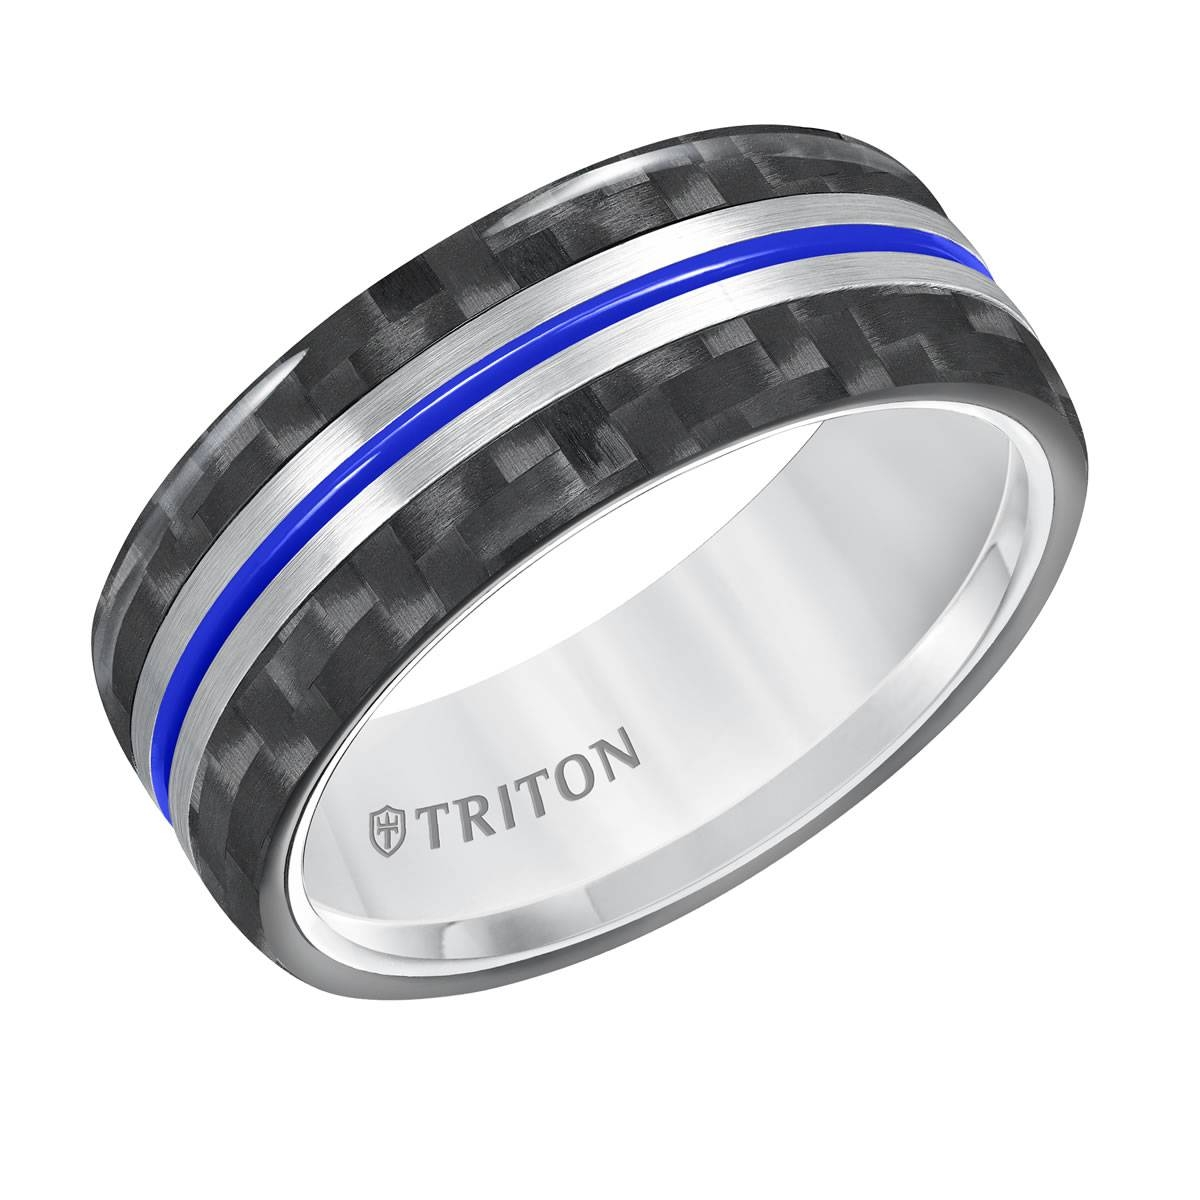 skatellsmanufacturing rings triton col wedding smj bands mr desc